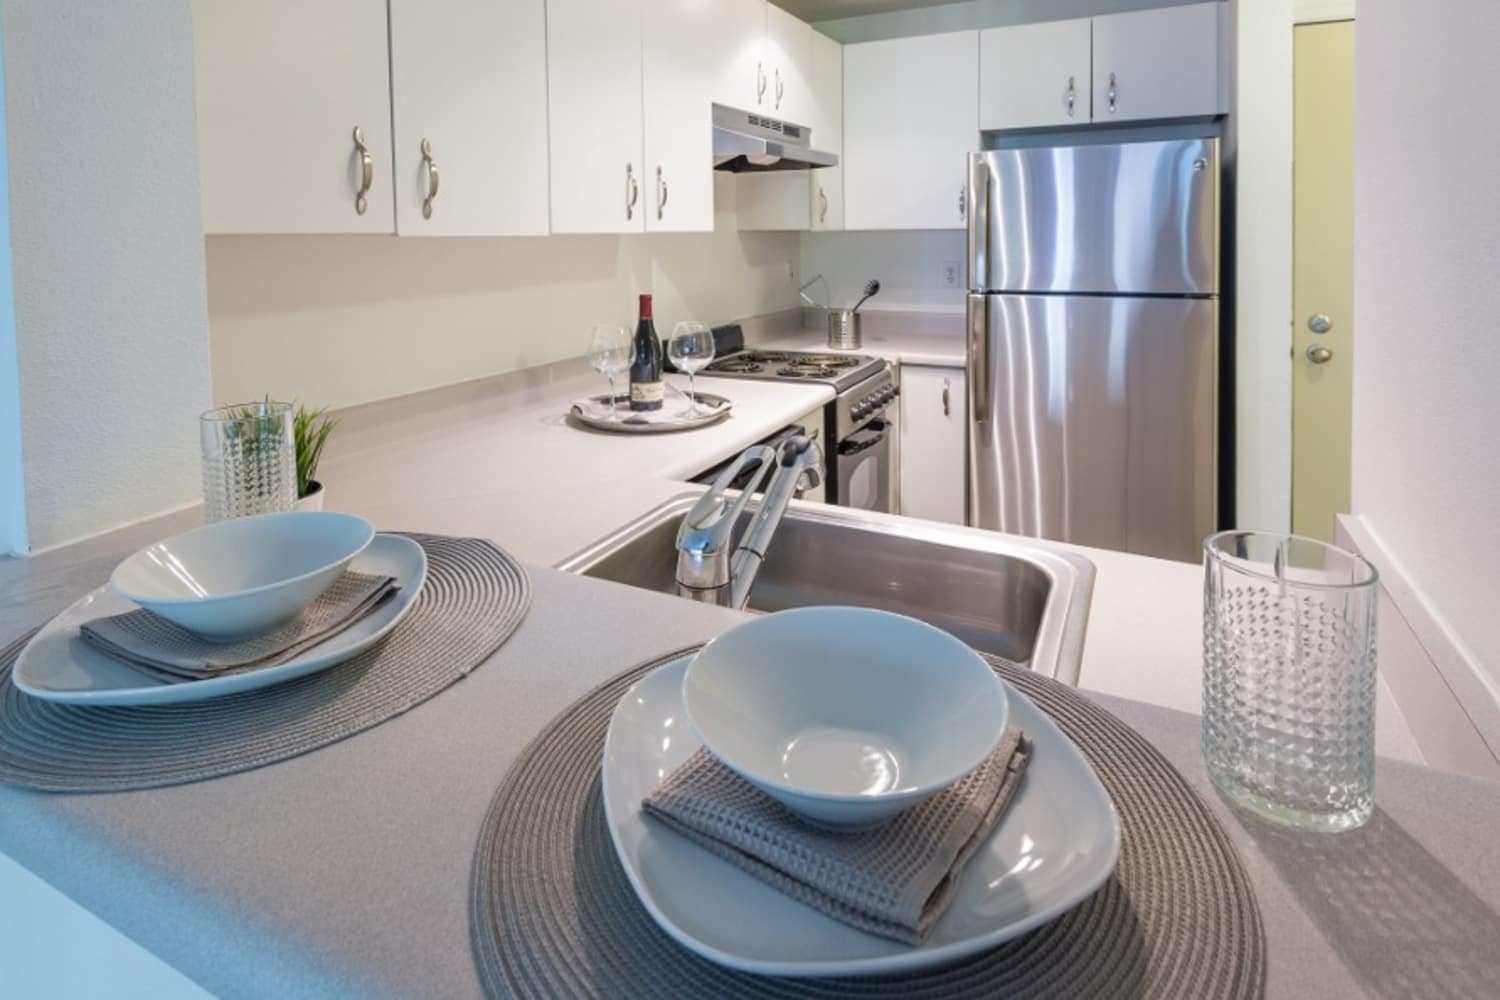 Counter space in apartment at Metropolitan Park Apartments in Seattle, Washington